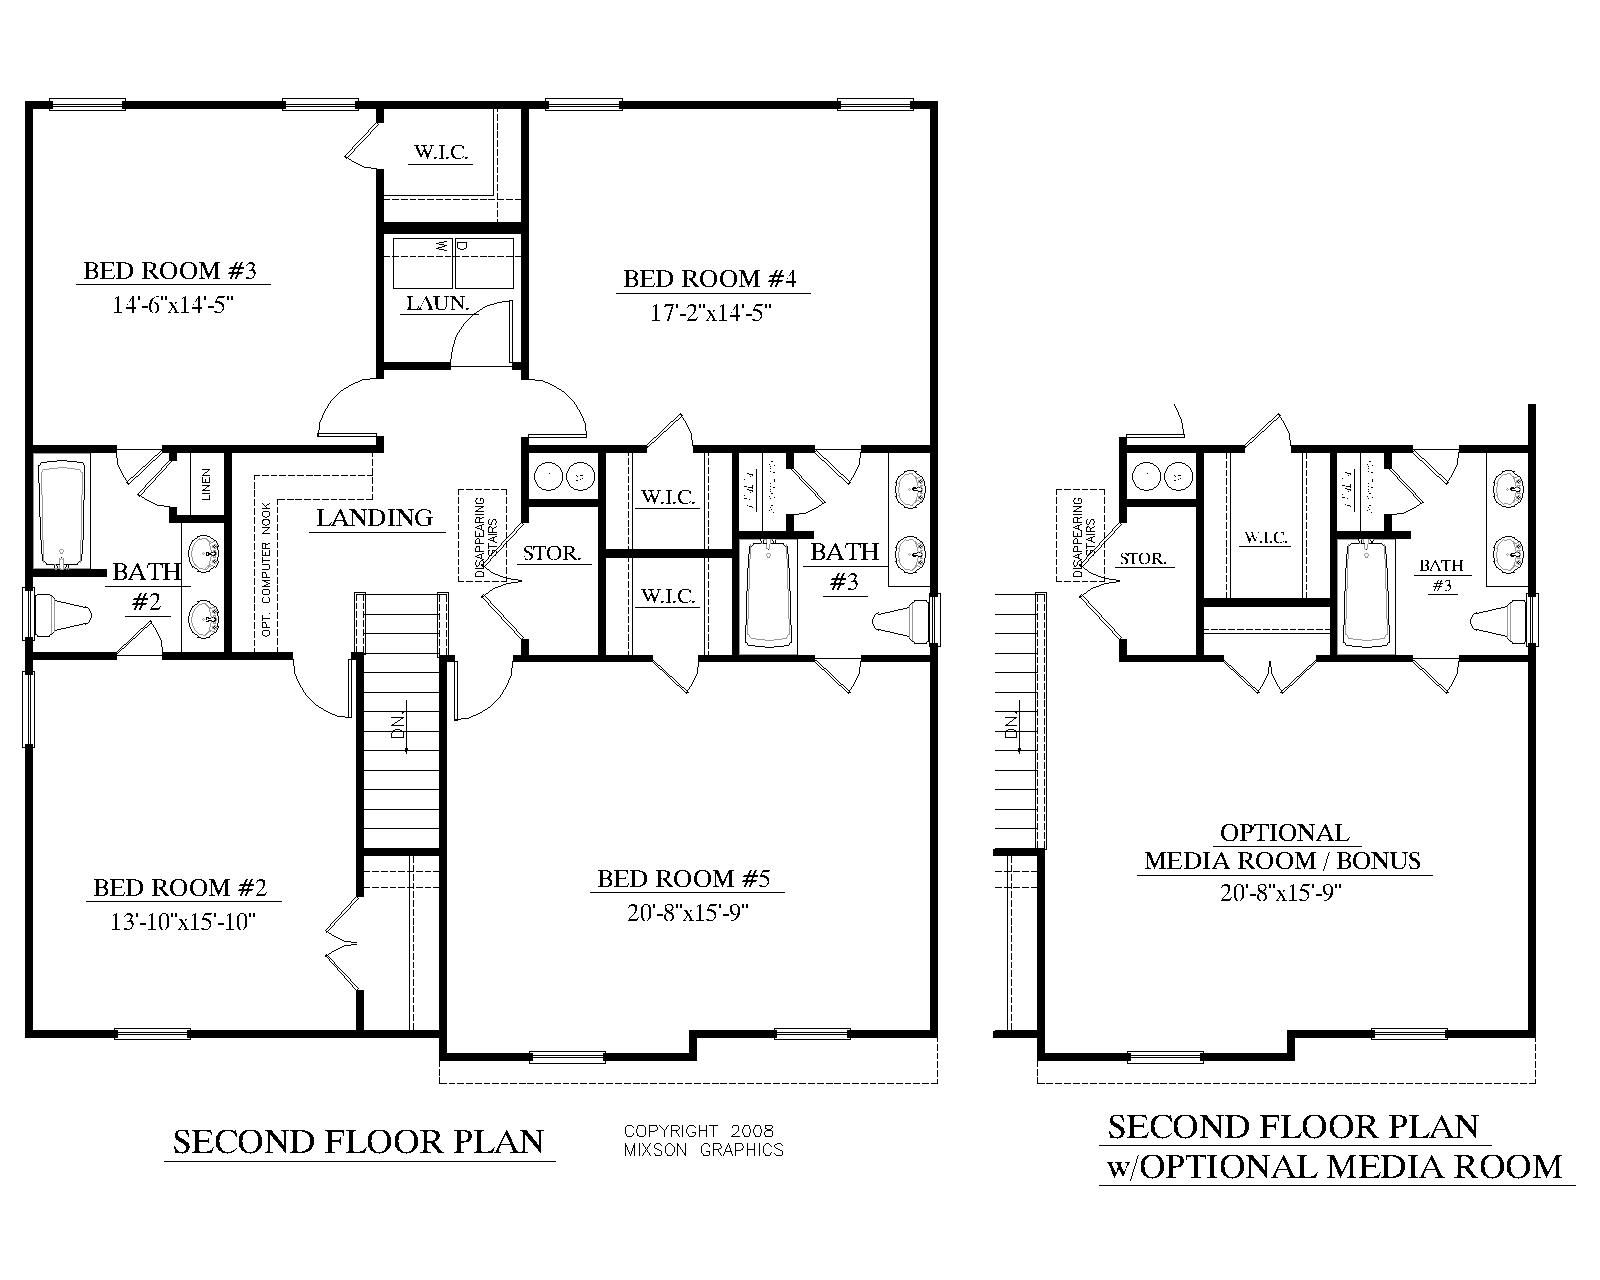 Second Floor Floor Plans second floor plan House Plan 2691 A Mccormick 2nd Floor Plan 2691 Square Feet 39